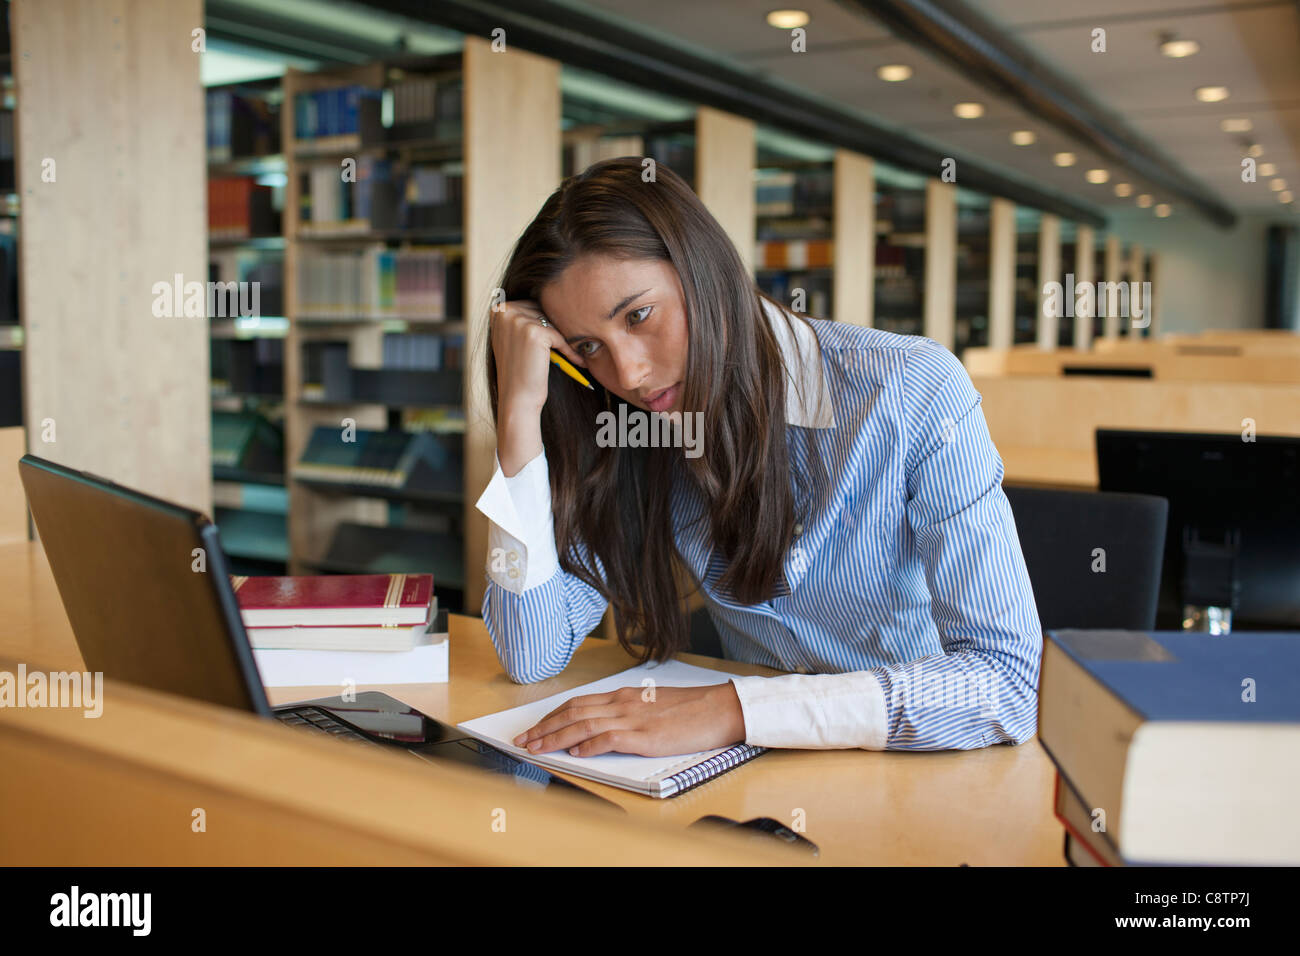 Netherlands, Maastricht, Female student studying in library Stock Photo